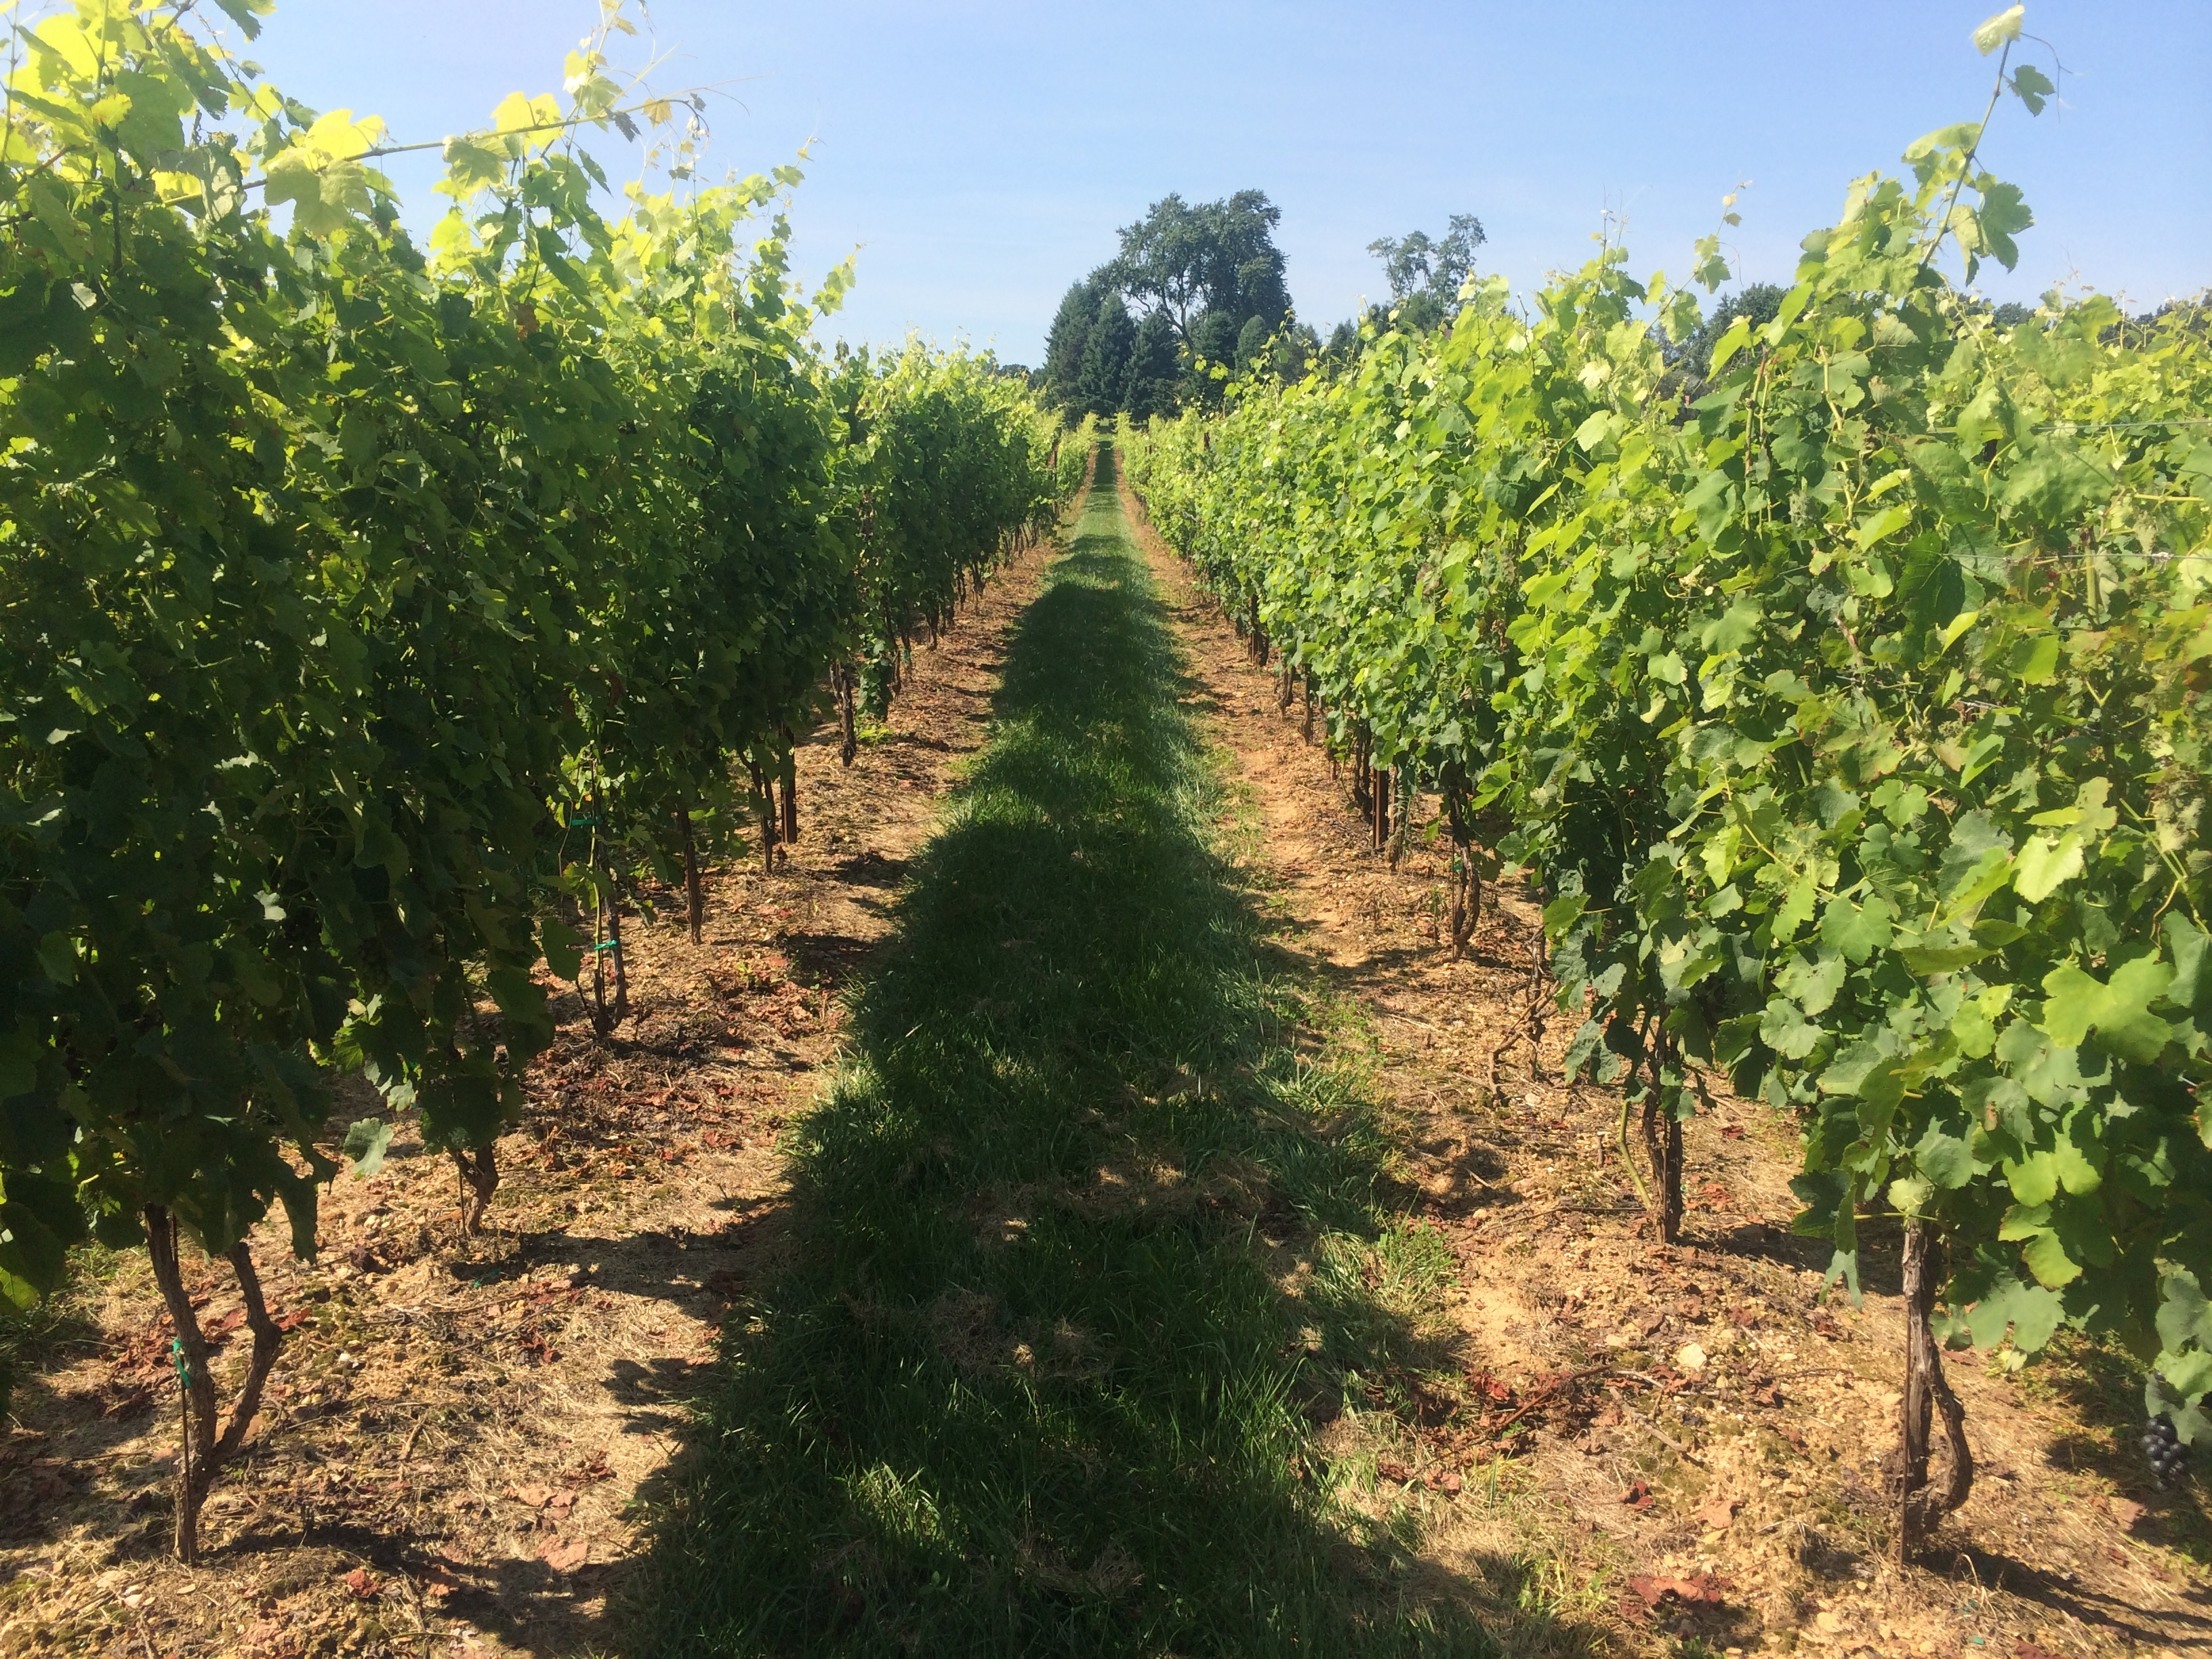 UC Davis, GE, and Winesecrets turn stormwater into wine